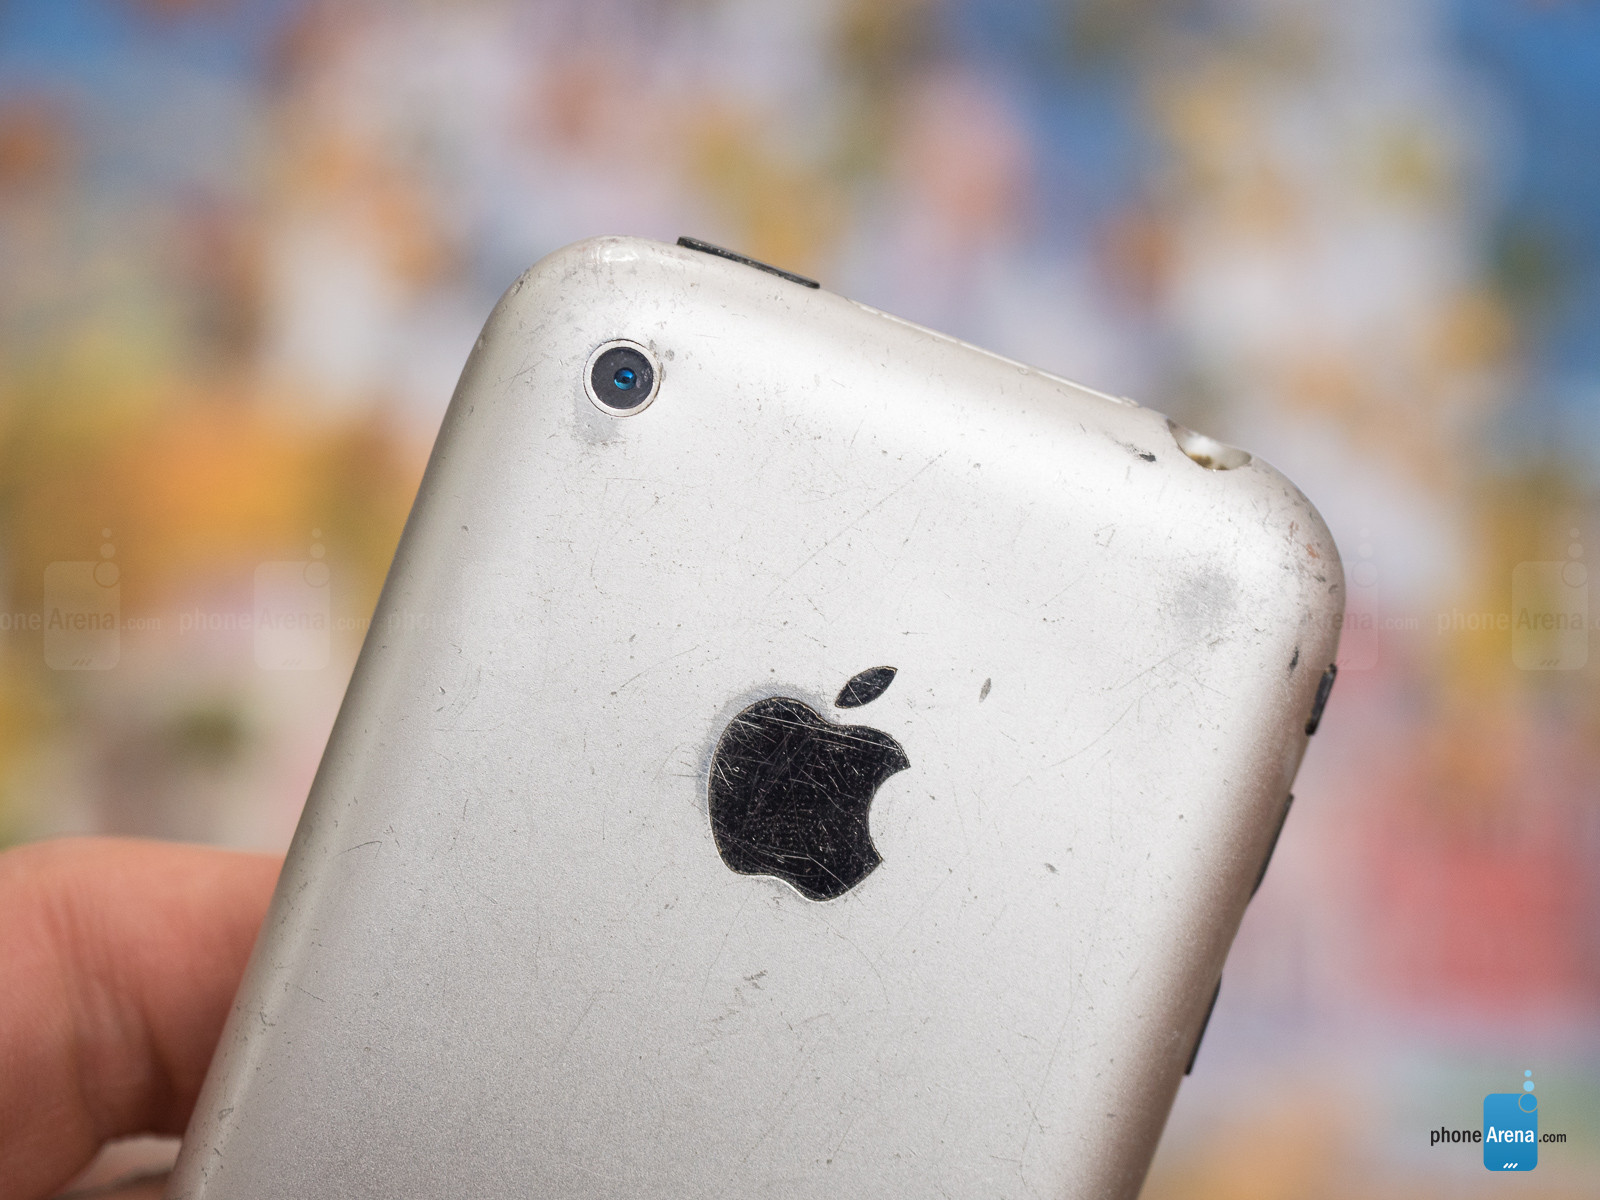 1498804005_bruised-and-battered-but-not-broken-10-years-on-my-iphone-2g-still-works.jpg